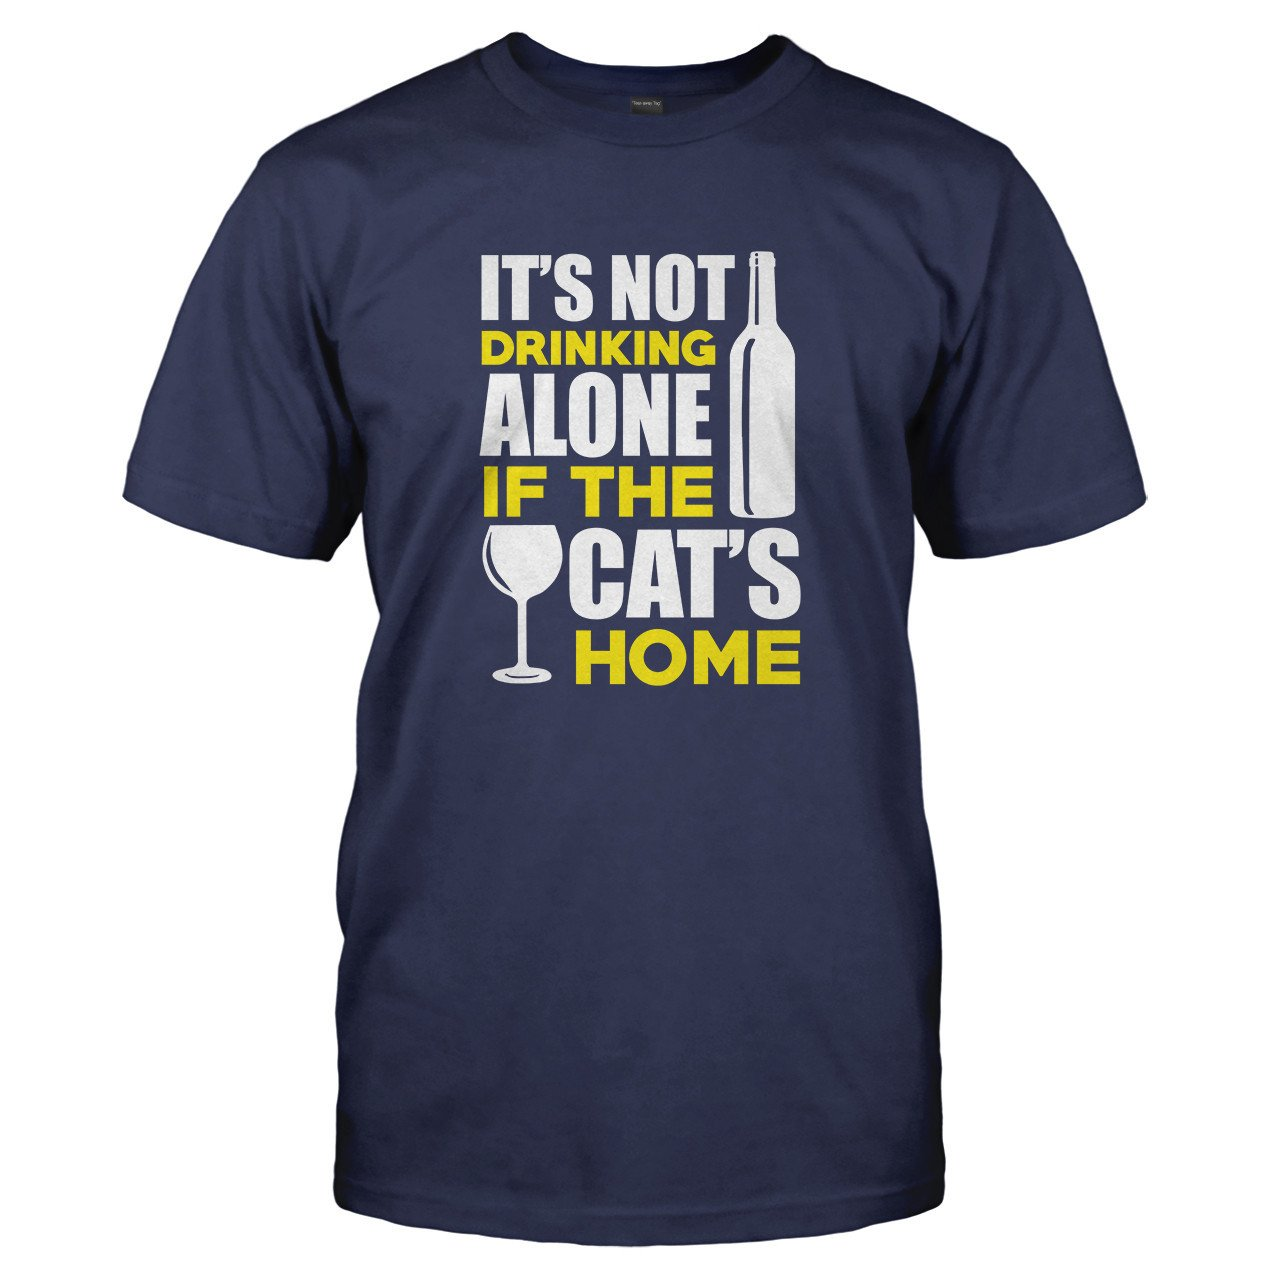 It's Not Drinking Alone if the Cat's Home - T Shirt